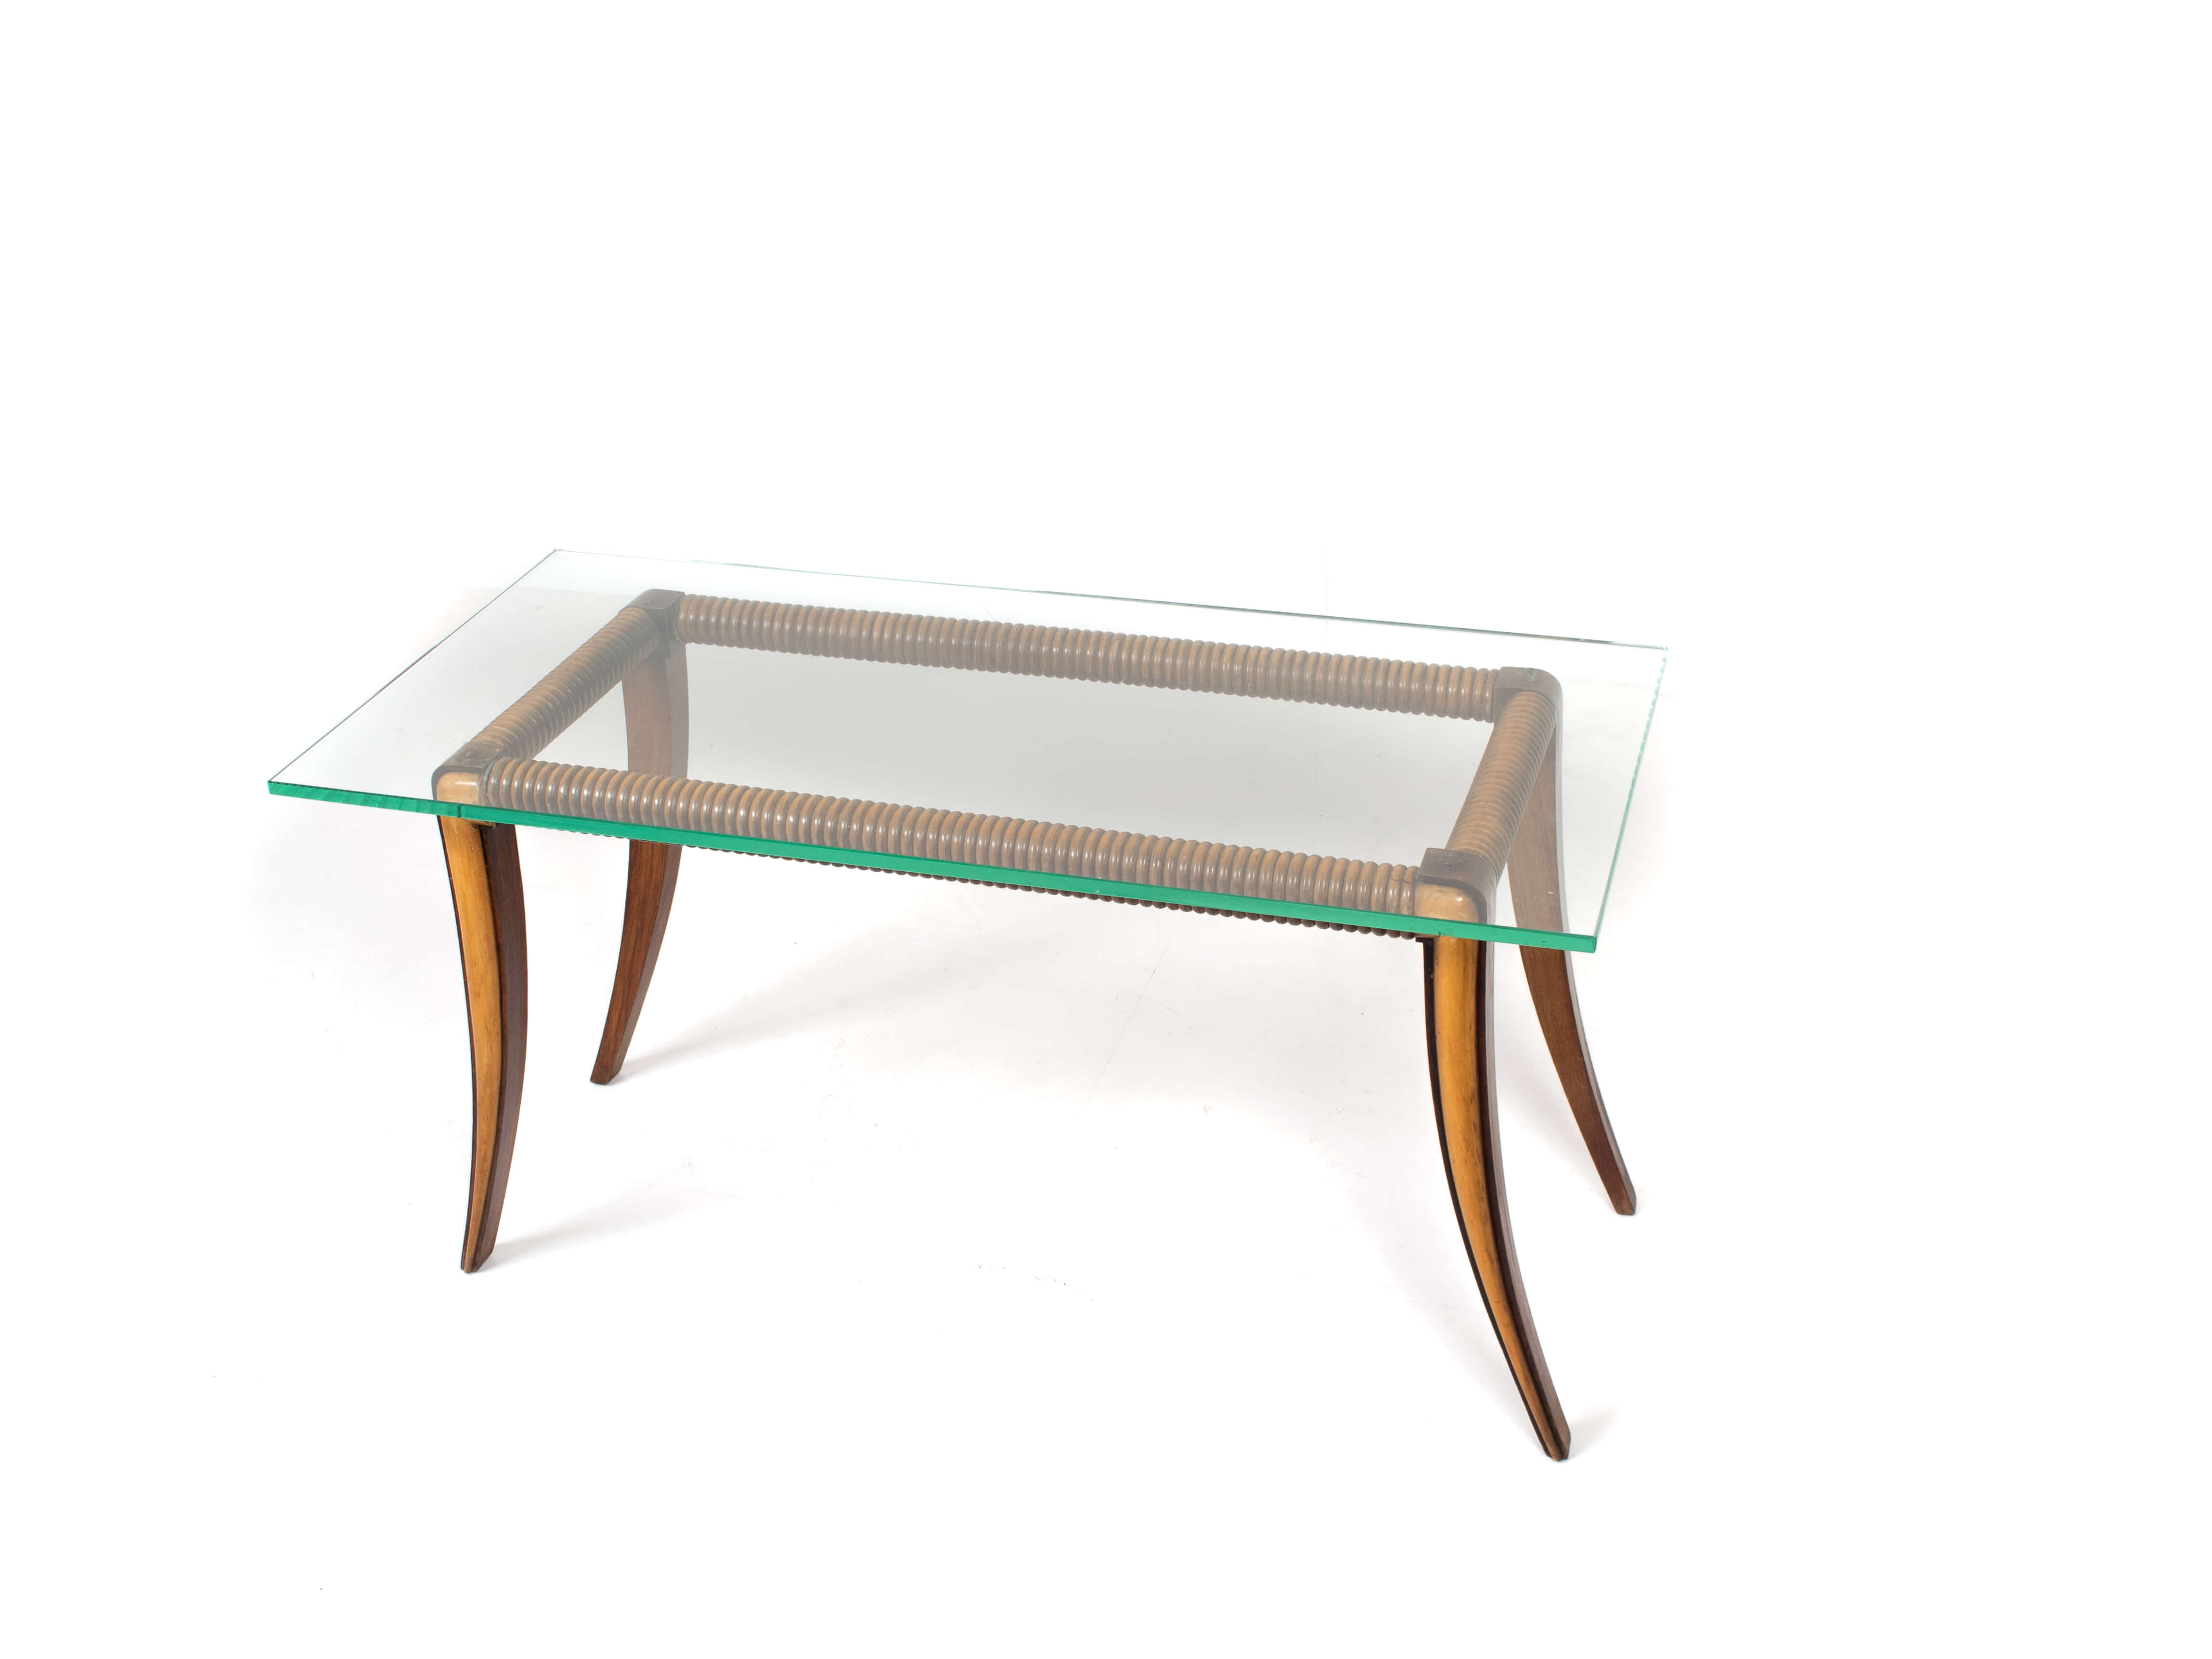 Top view Maple and Wood Coffee Table by Osvaldo Borsani